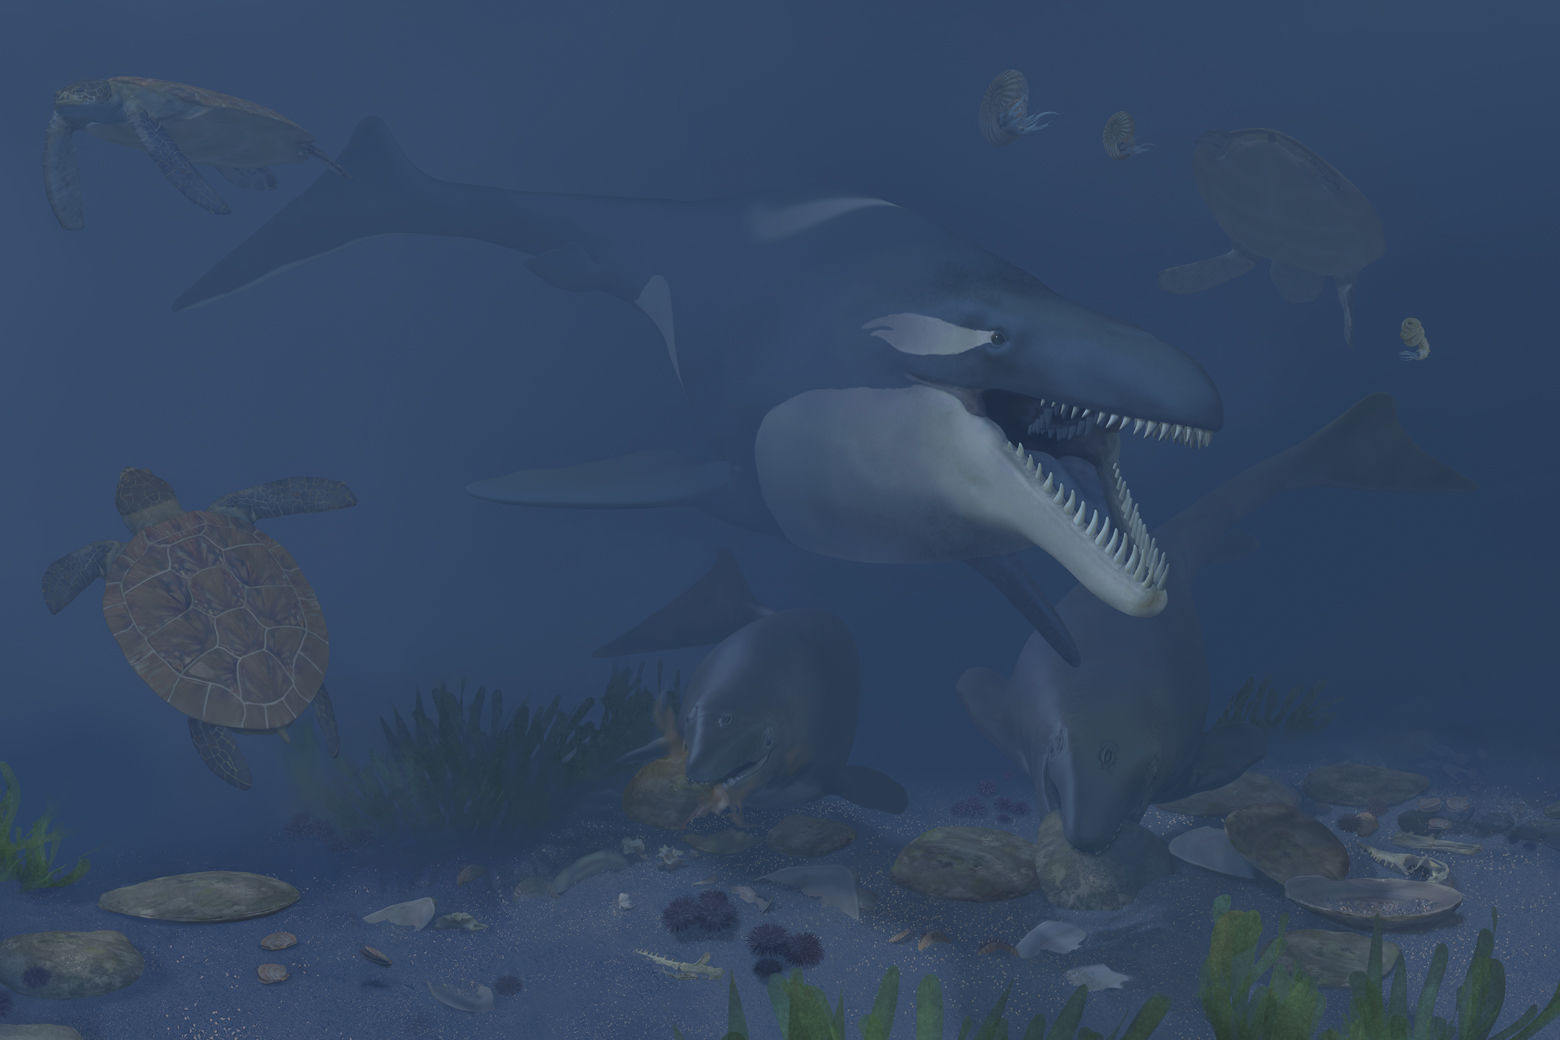 An artist's rendering of a 72-million-year-old ecosystem found off of coastal Angola. If you visited coastal Angola today, you could swim with whales and dolphins. But if you traveled back in time to the Late Cretaceous, you might not have wanted to jump in the water—it was filled with carnivorous reptiles, like mosasaurs and plesiosaurs. Even some of the sea turtles were enormous. (Courtesy Smithsonian/Karen Carr Studios, Inc.)